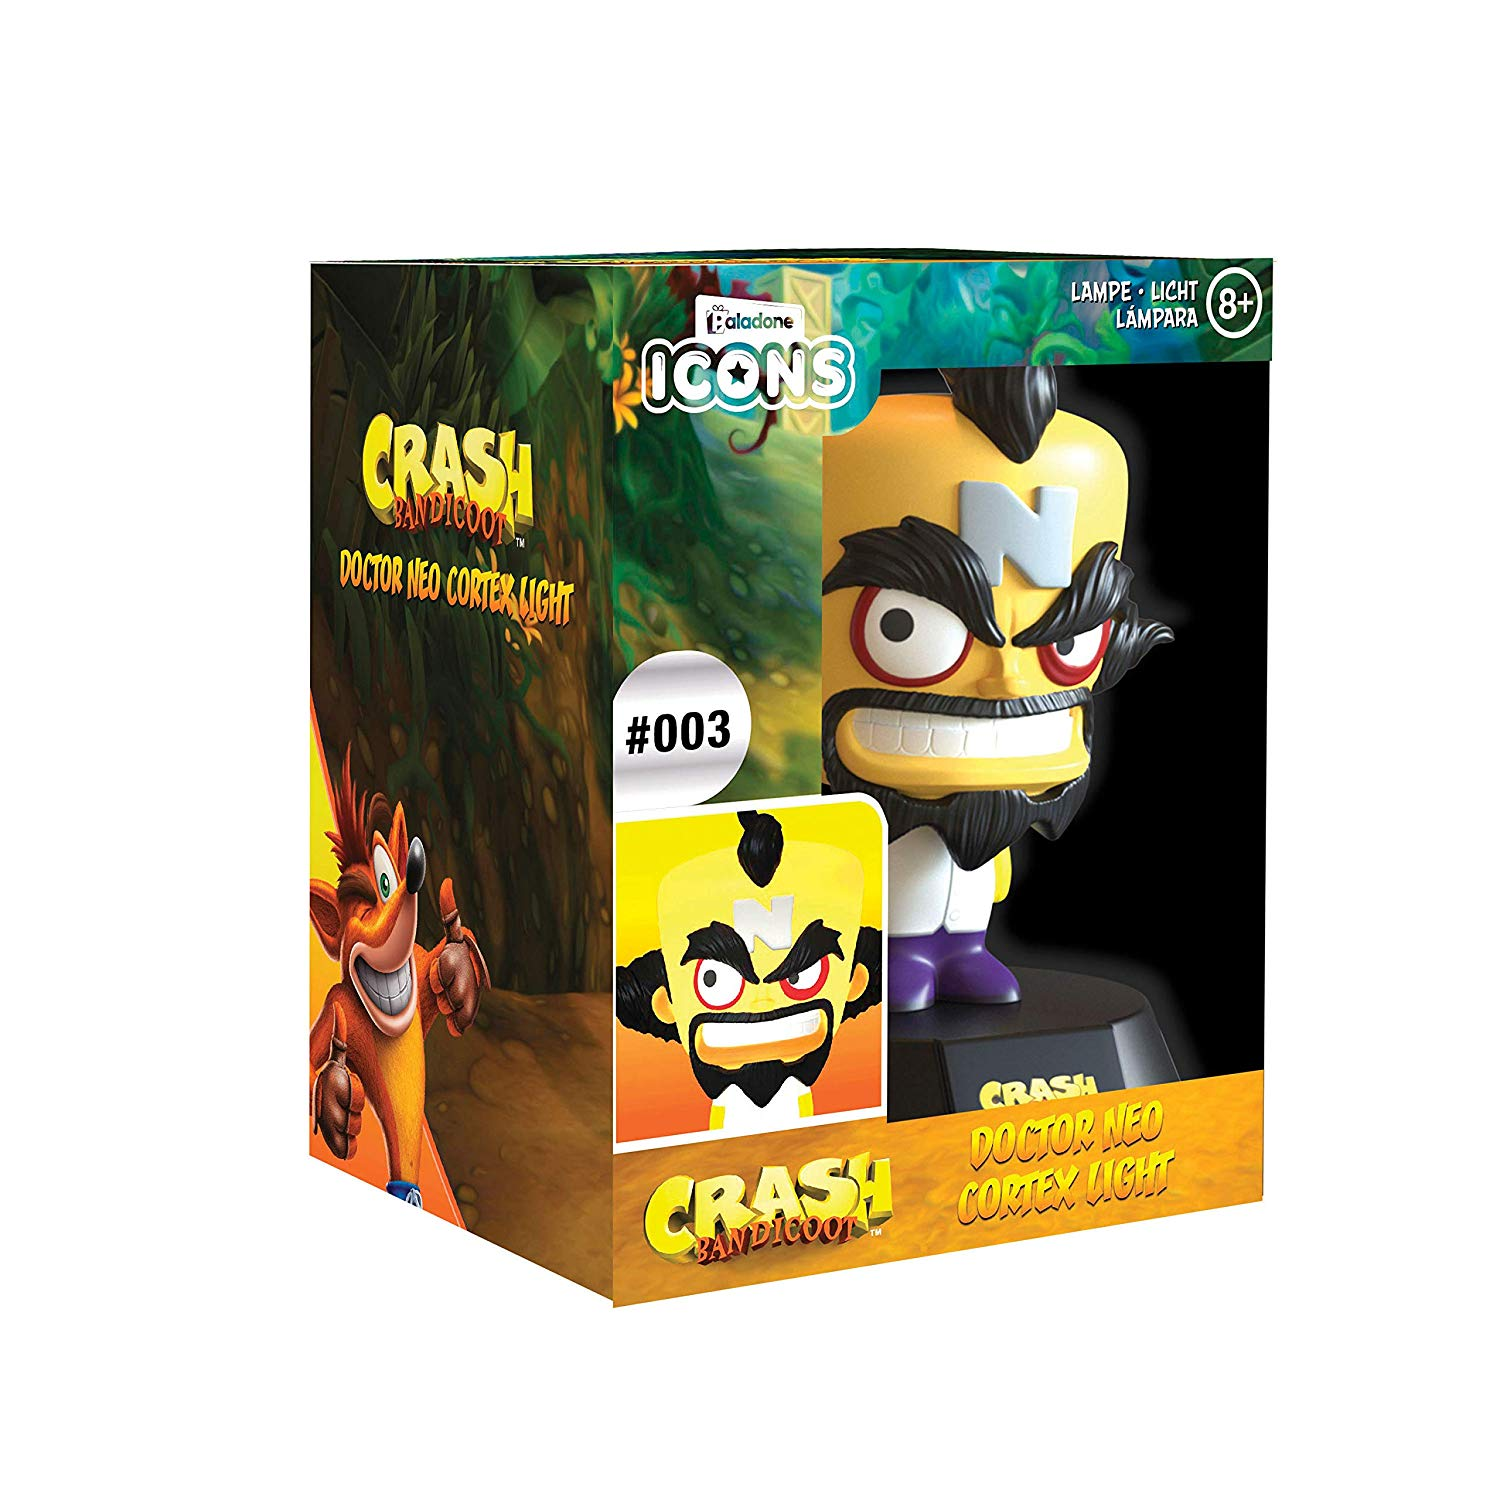 Crash Doctor Neo Cortex Icon Light V2 BDP